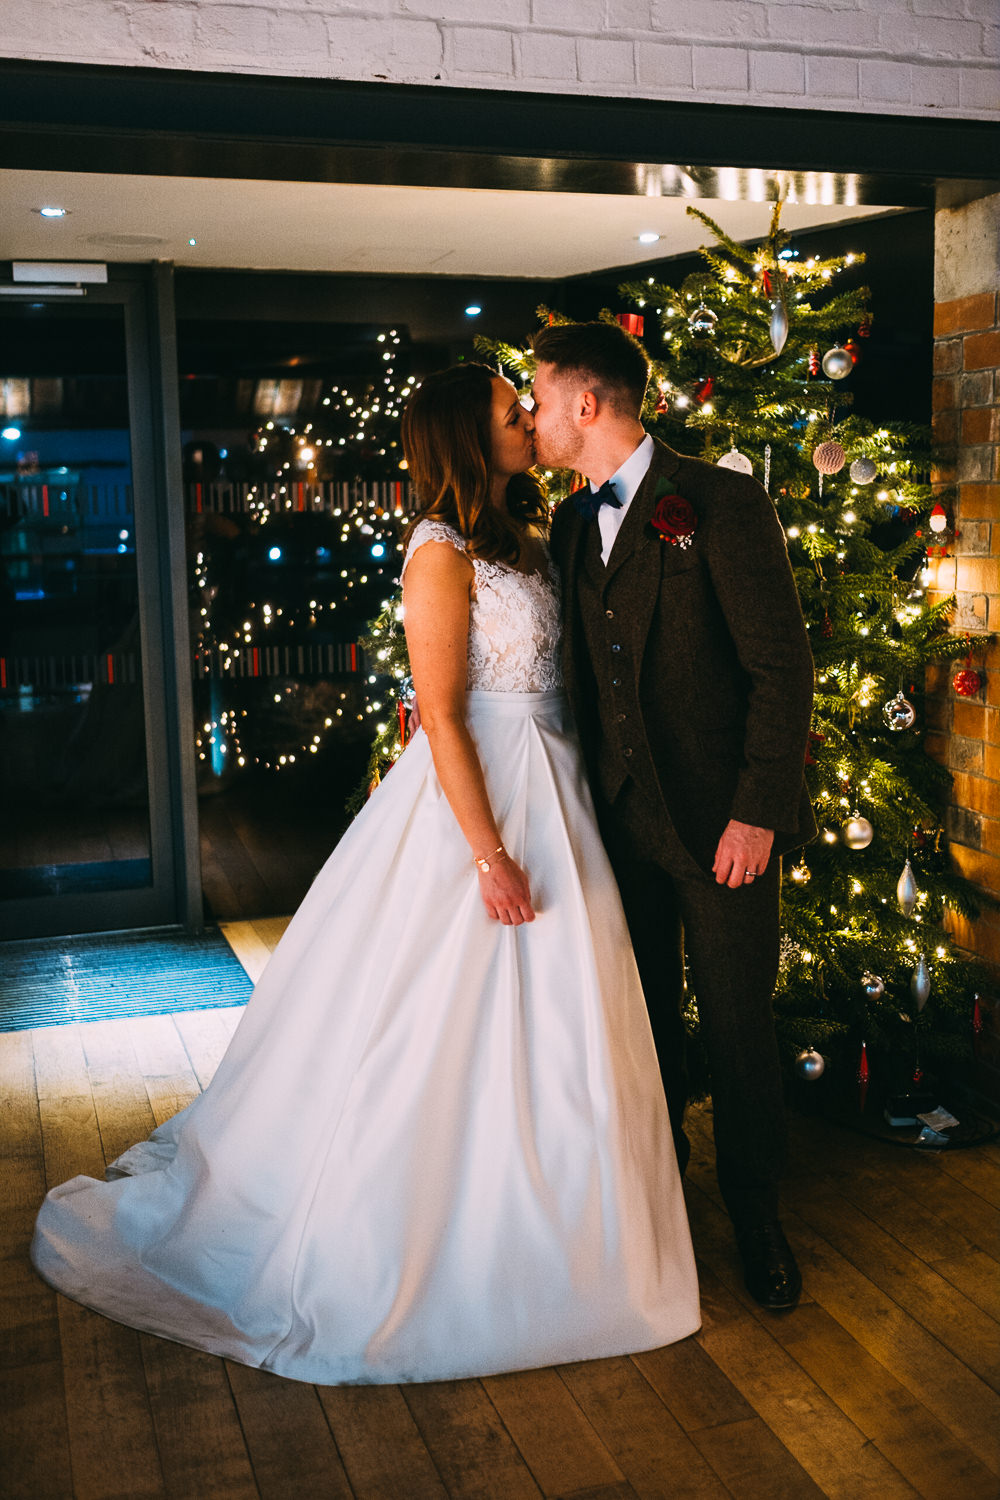 003 BRIDE AND GROOM ROMANTIC MOMENT IN FRONT OF CHRISTMAS TREE WEDDING PHOTOGRAPHY SWANSEA NATIONAL WATERFRONT MUSEUM WEDDING